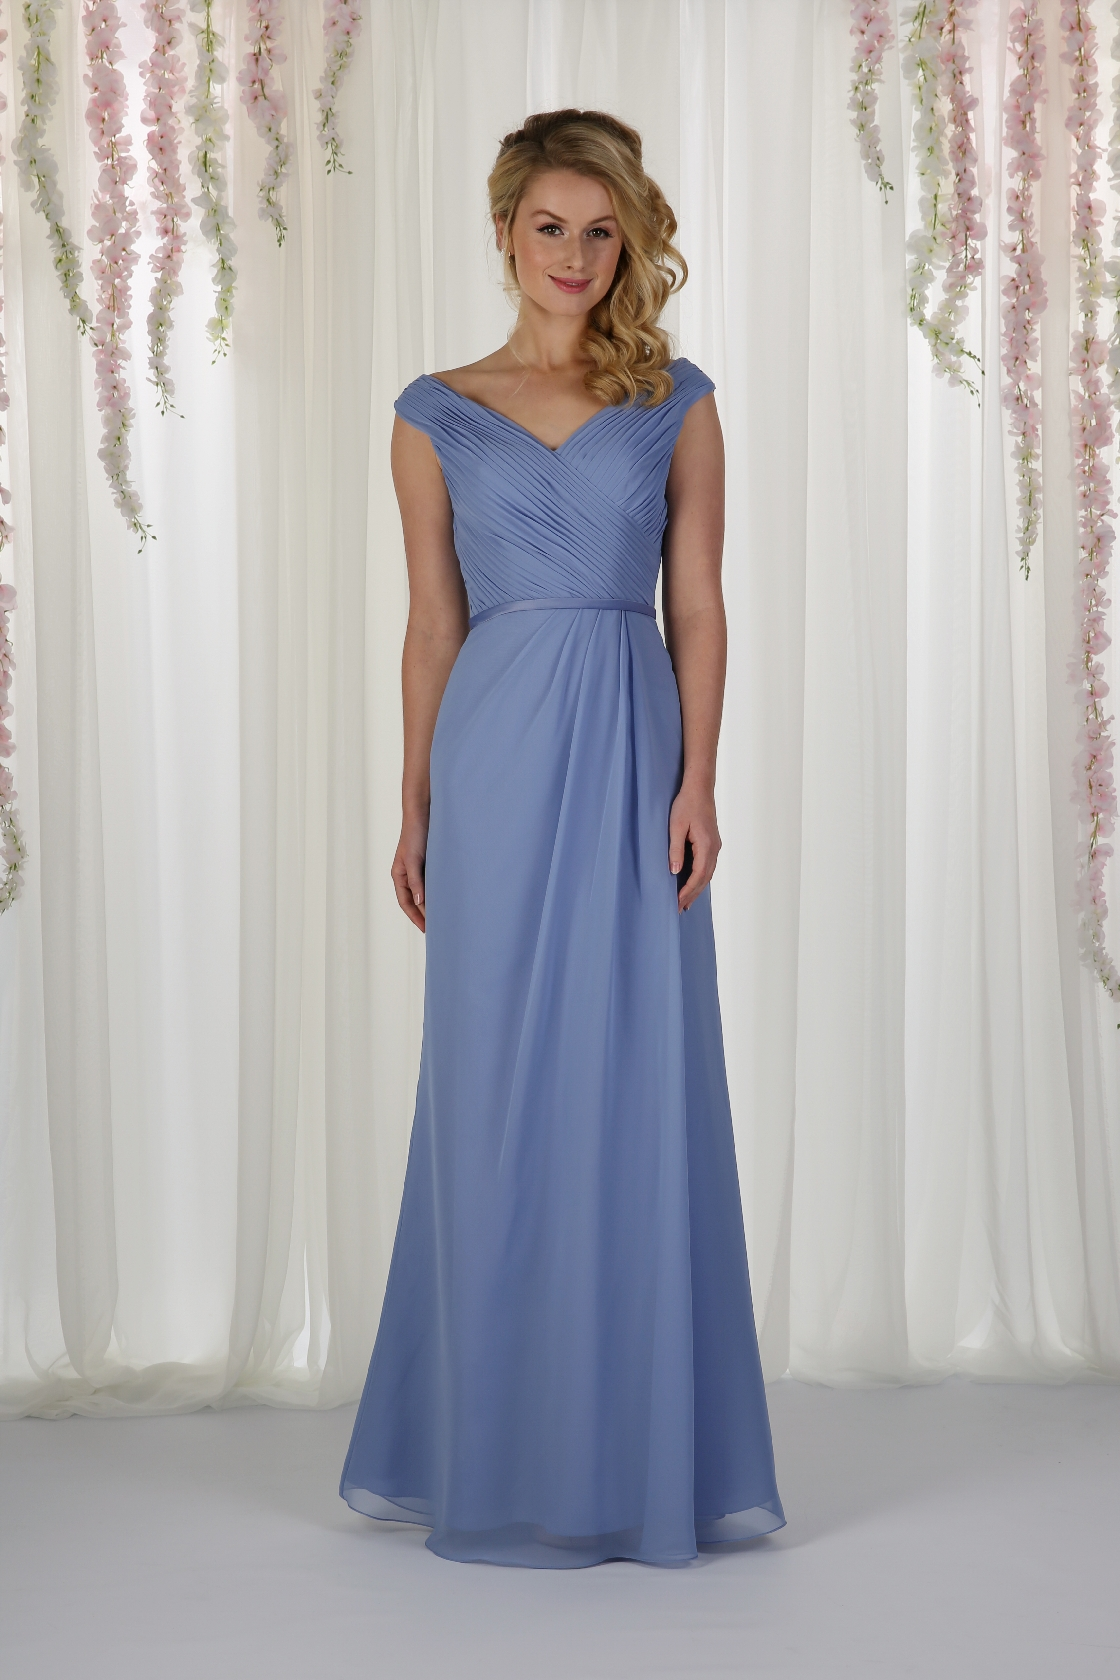 Richard Design Bridesmaids Dresses available at The Bridal Boutique Jersey